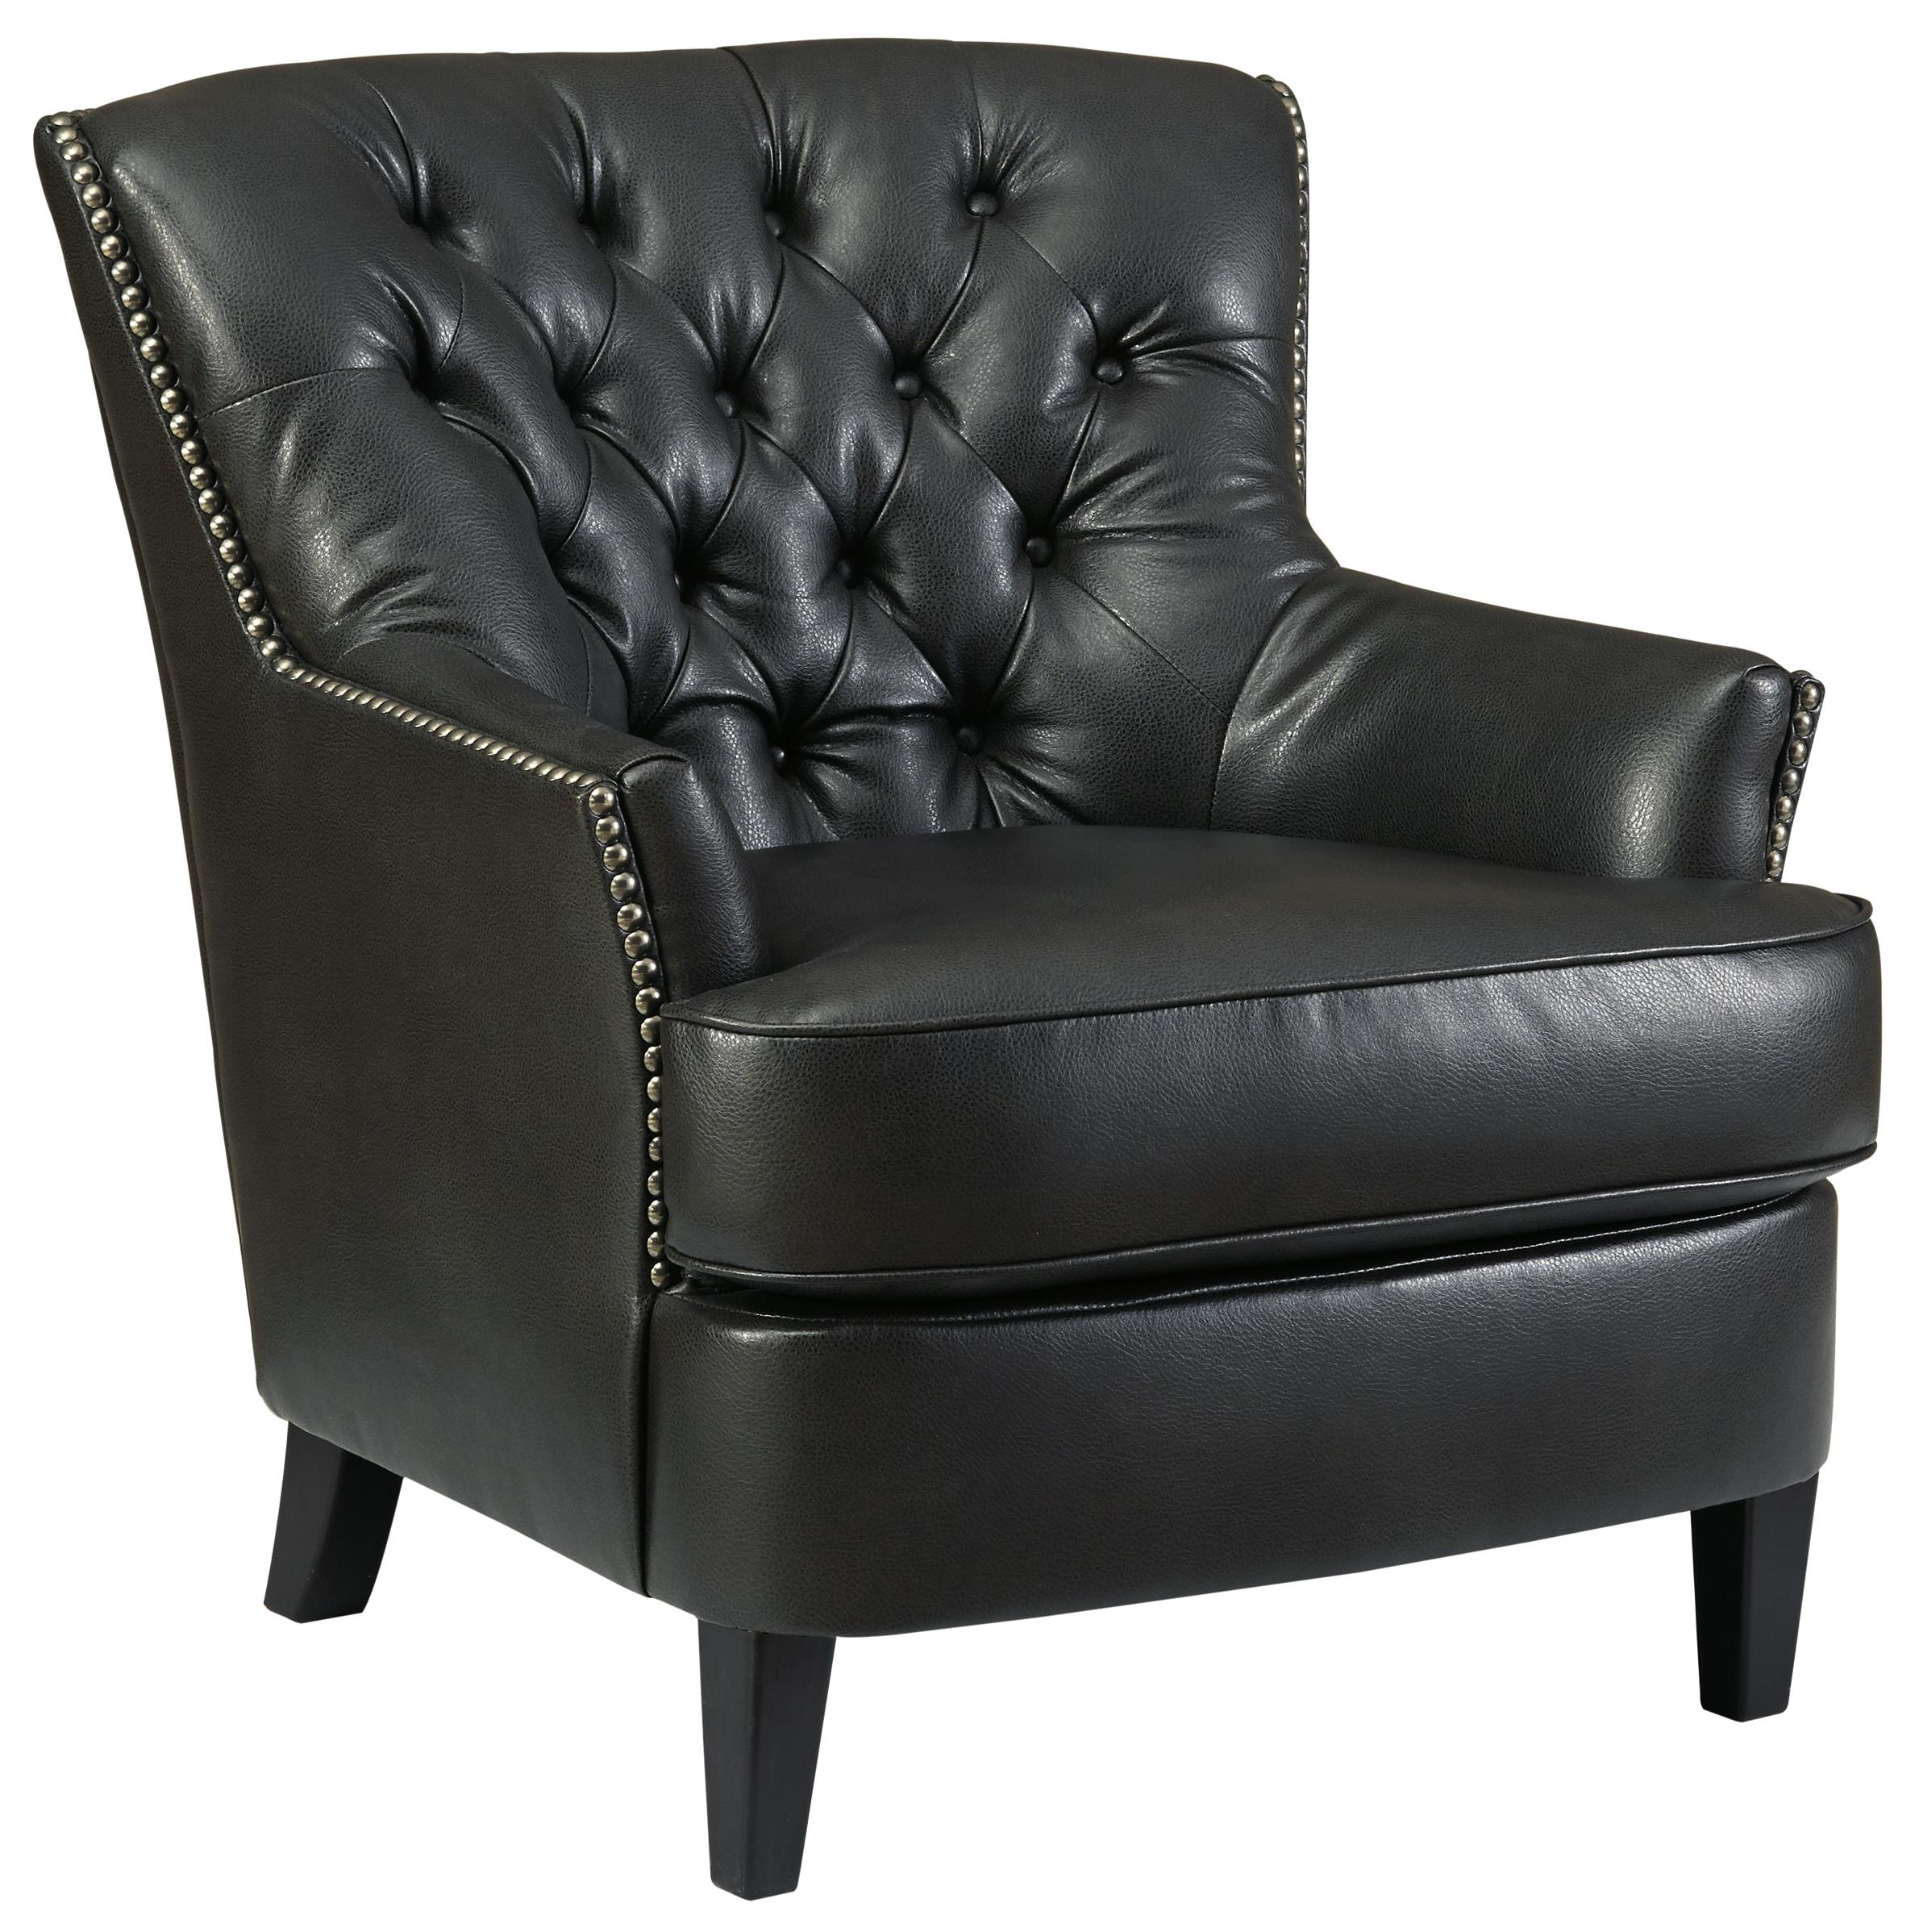 Ashley/Benchcraft Azlyn Accent Chair - Item Number: 9940222